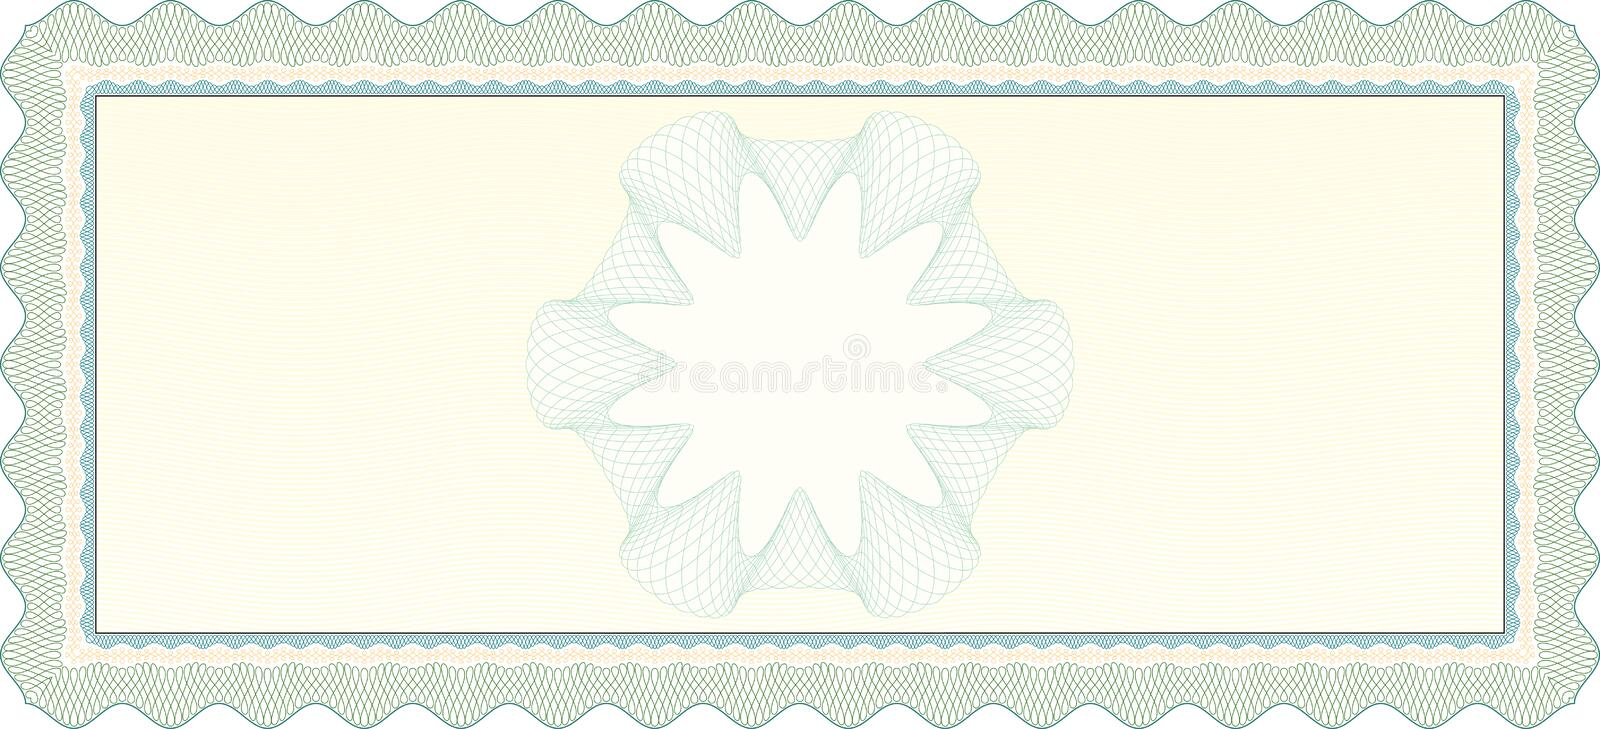 Download Empty Voucher Coupon stock vector. Illustration of frame - 28451805